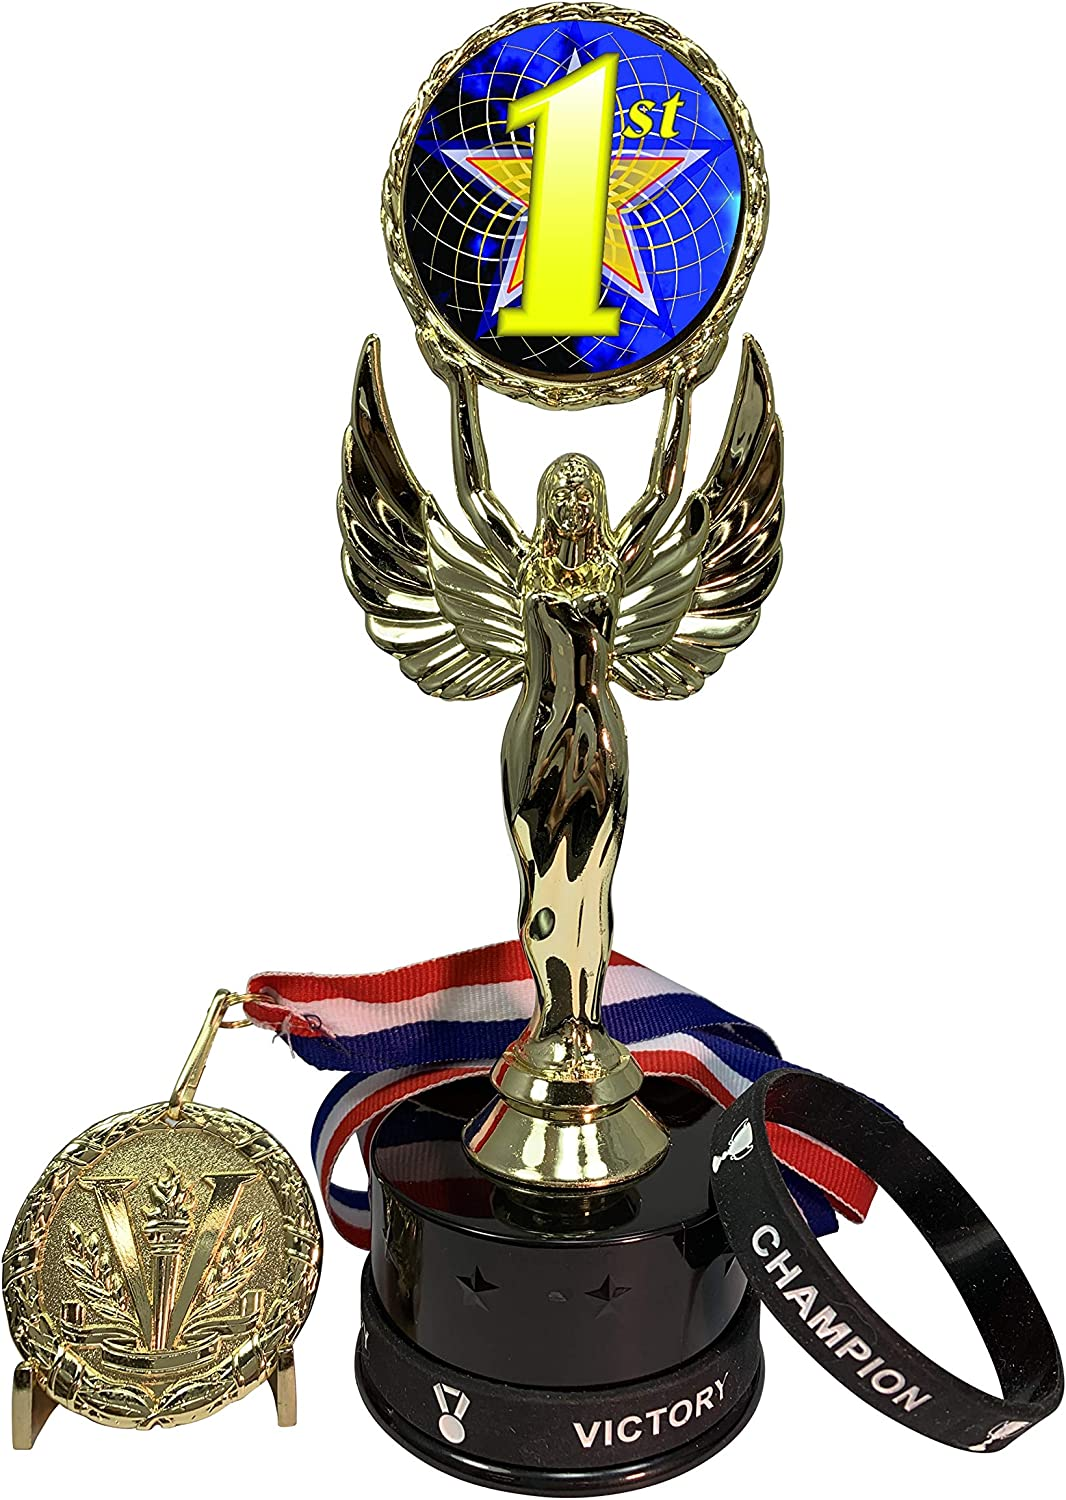 Express Medals 1 to 12 Packs of Inc That Max 69% OFF Place 1st Awards Trophy Sale Special Price